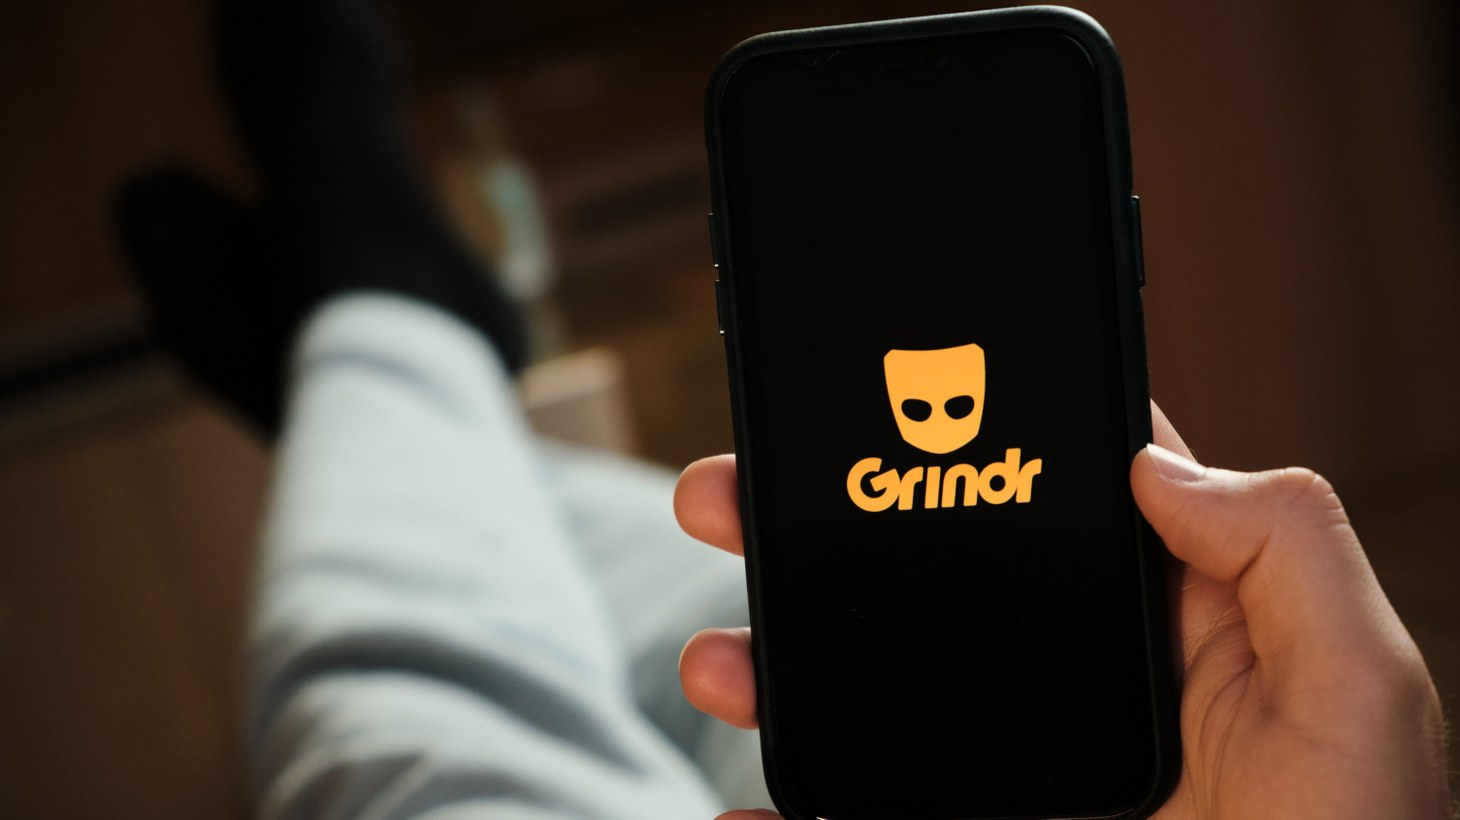 """""""The Pillar,"""" a Catholic news site, claims that Monsignor Jeffrey Burrill used Grindr and visited gay bars. The site said it used his cell phone location data to discover this."""